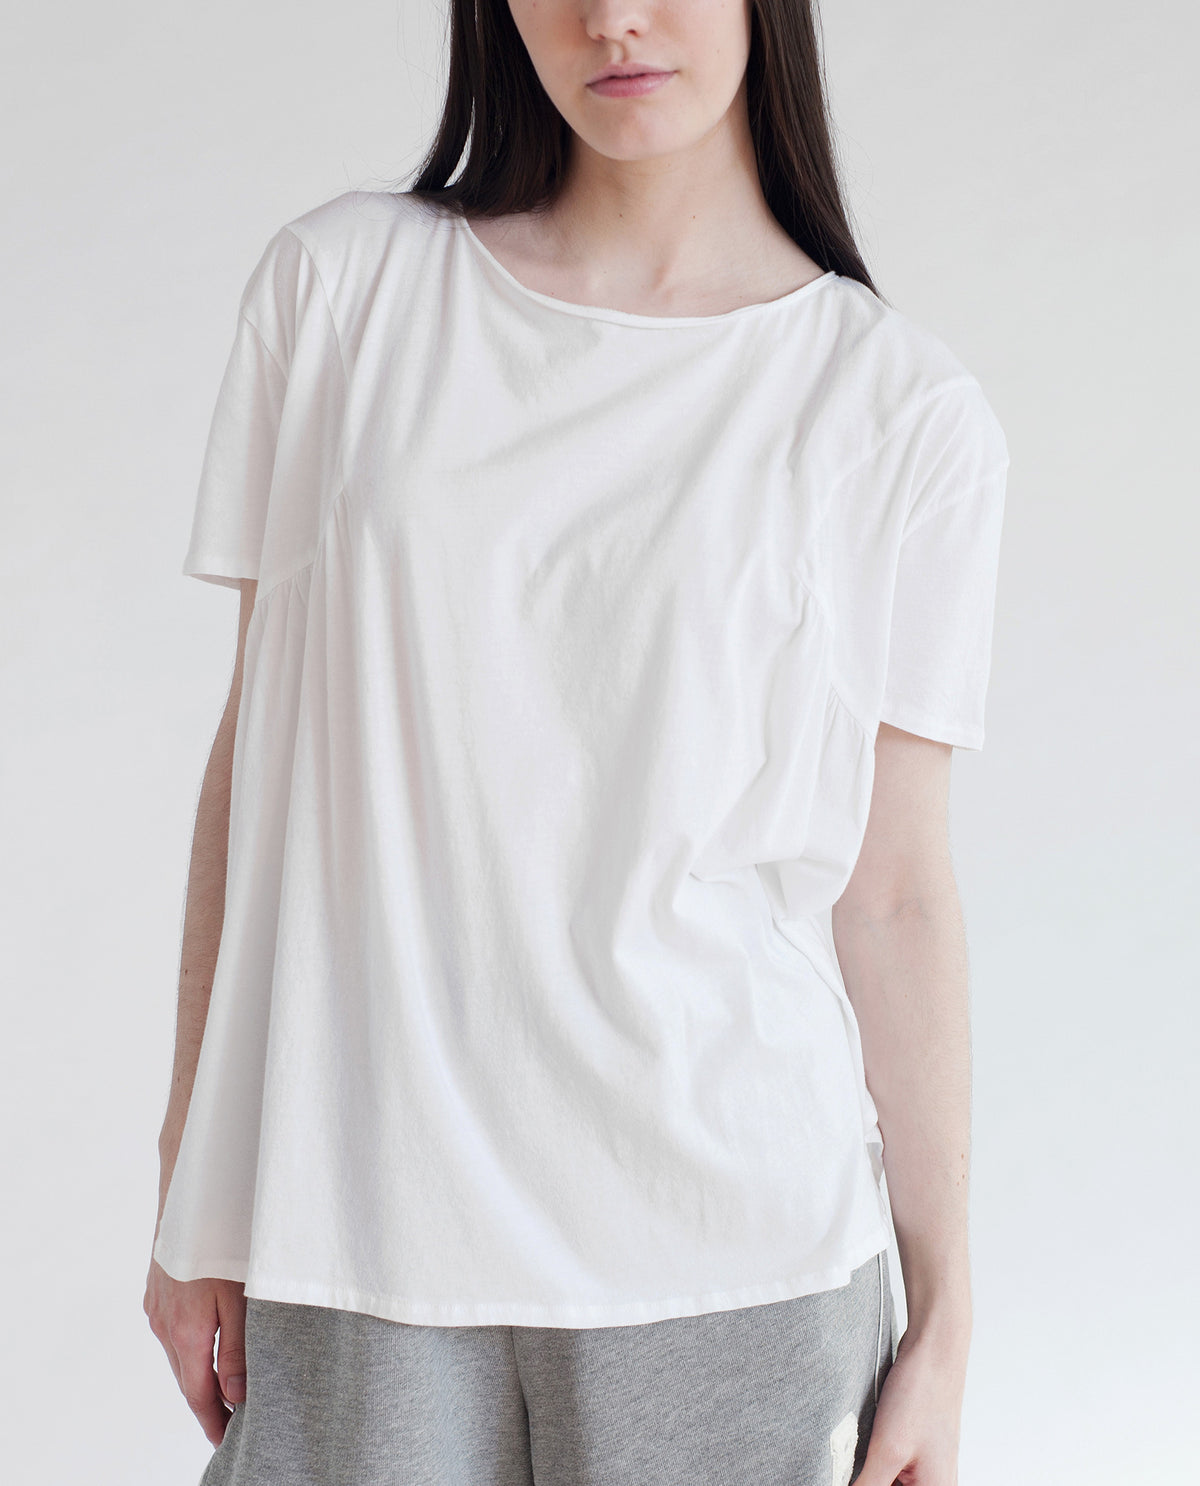 HOLLY Organic Cotton Top